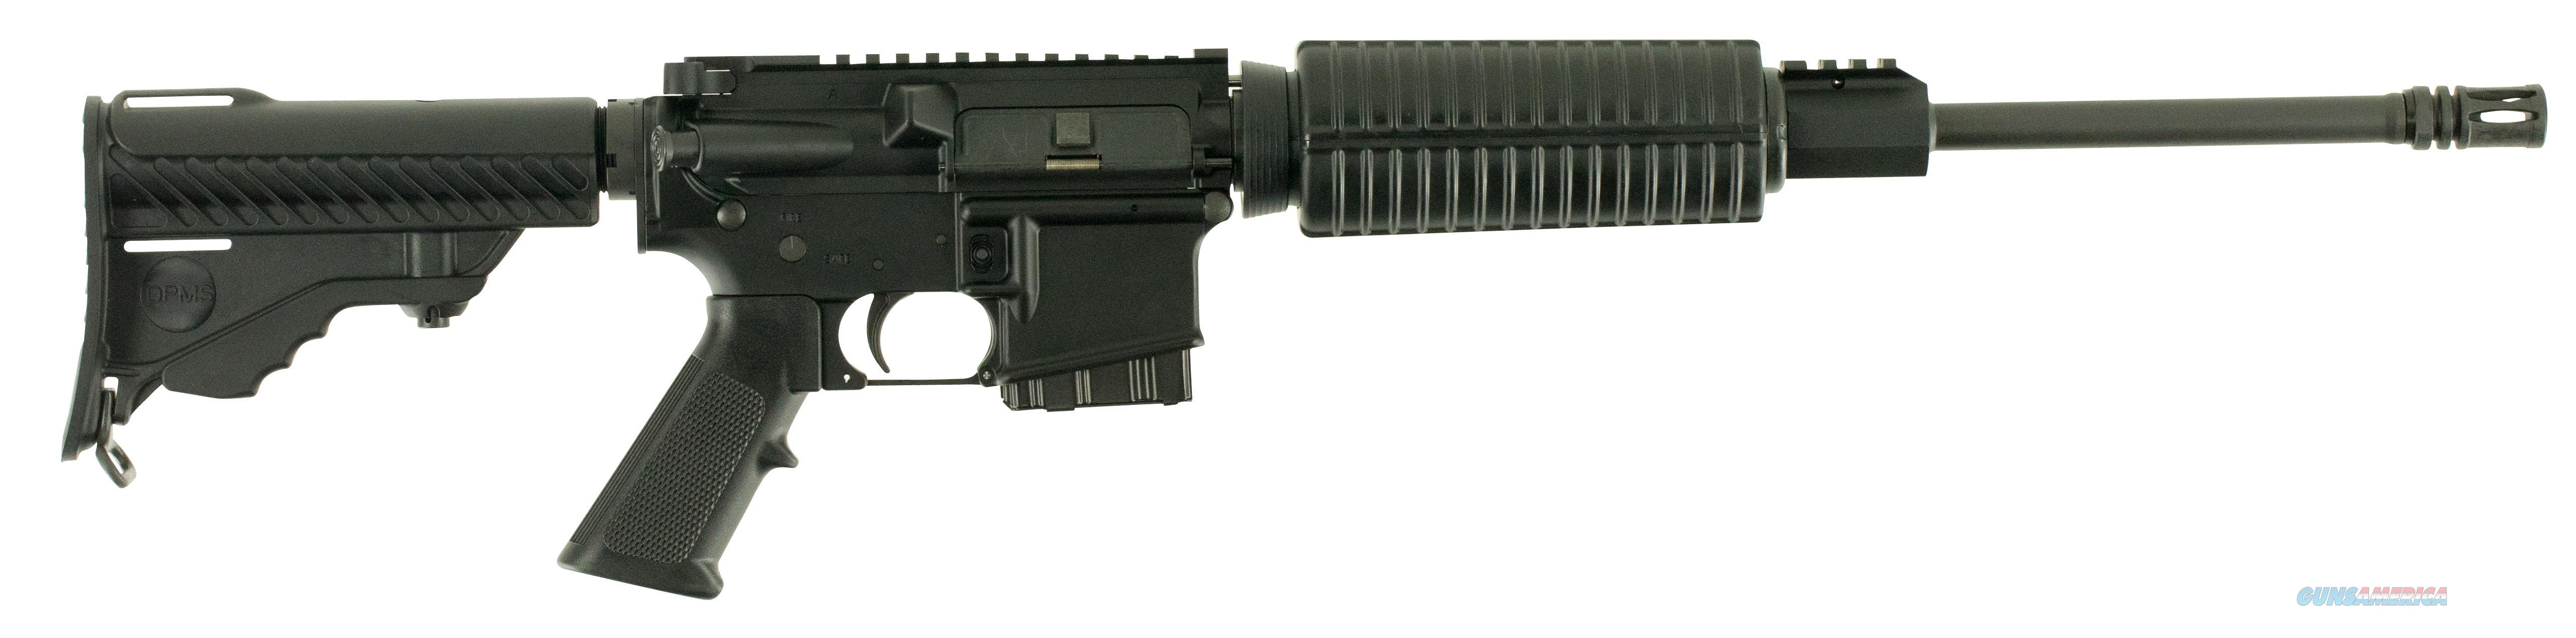 "DPMSPANTHER ARMS ORACLE 223 16"" 10RD BLK SYN 60532  Guns > Rifles > DPMS - Panther Arms > Complete Rifle"